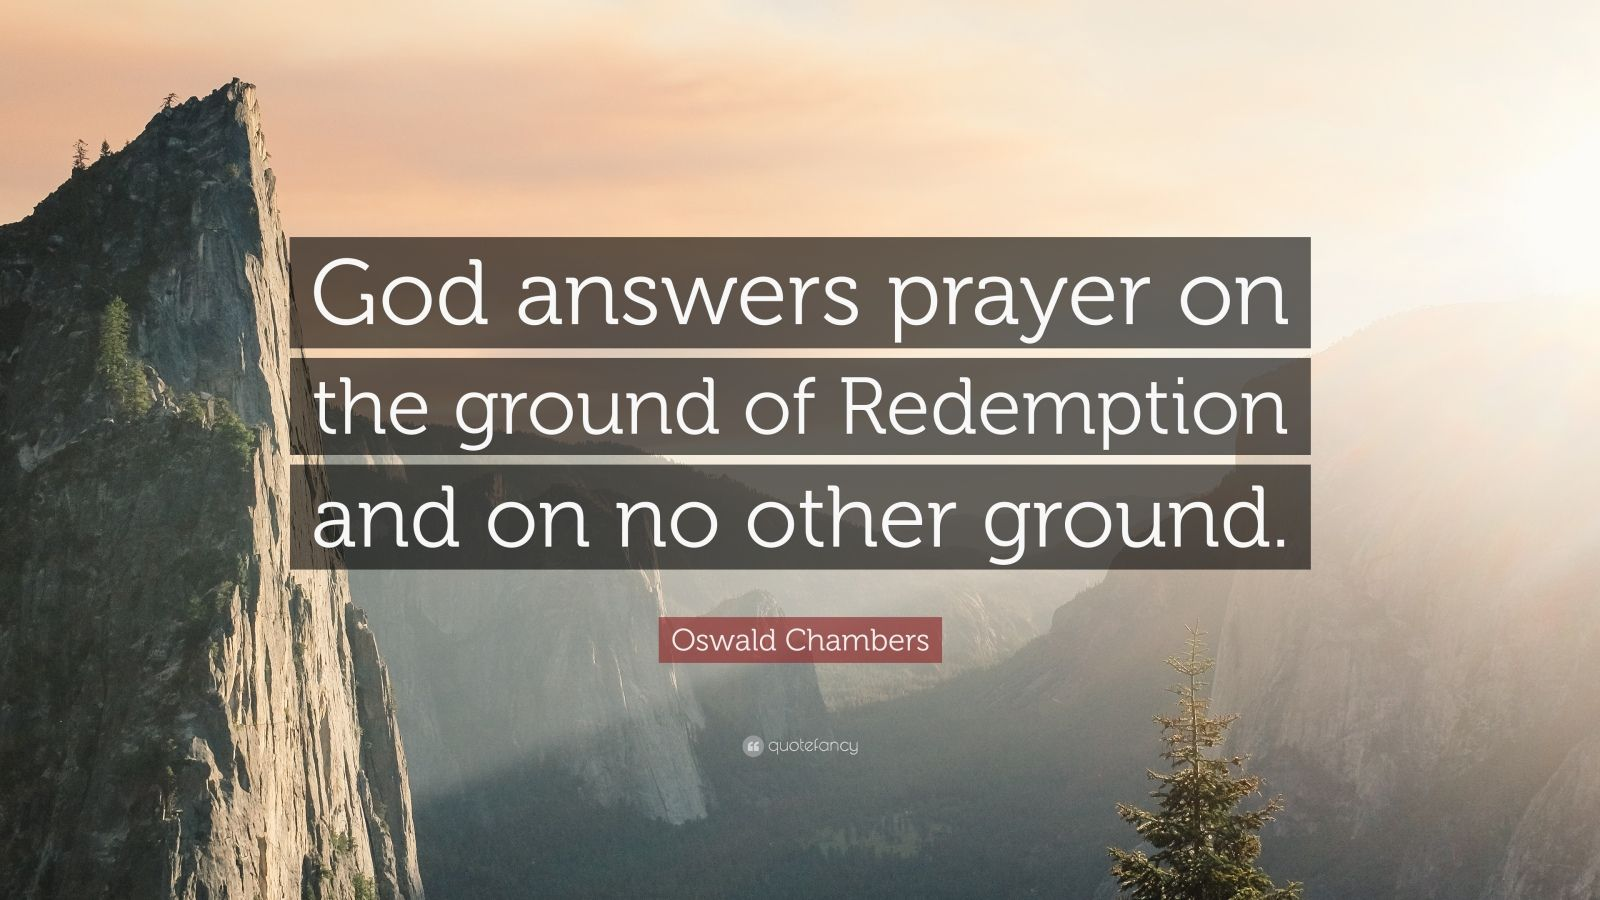 """Oswald Chambers Quote: """"God answers prayer on the ground of Redemption and on no other ground."""""""